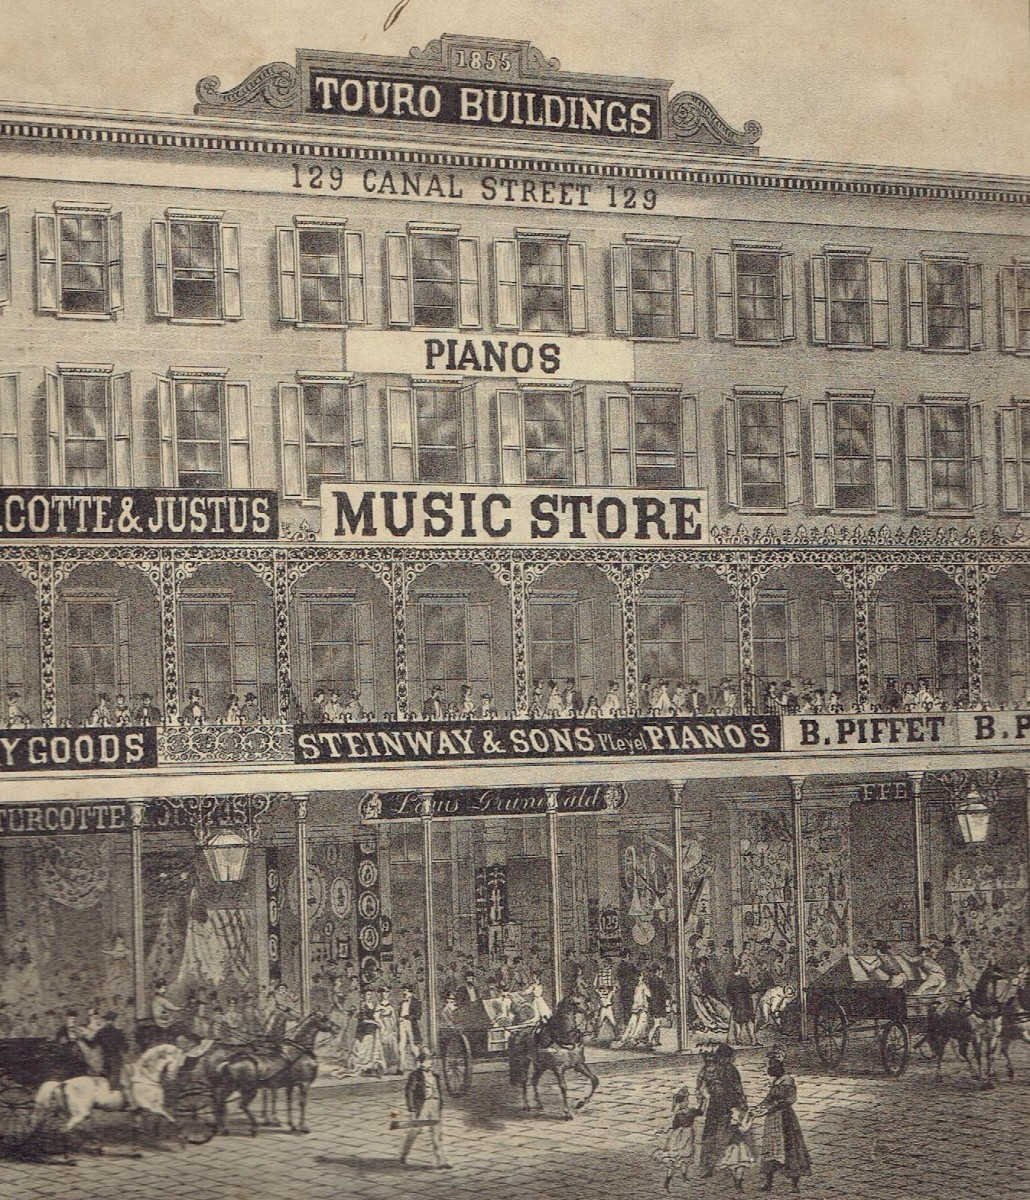 Louis Grunewald's music store on Canal Street.